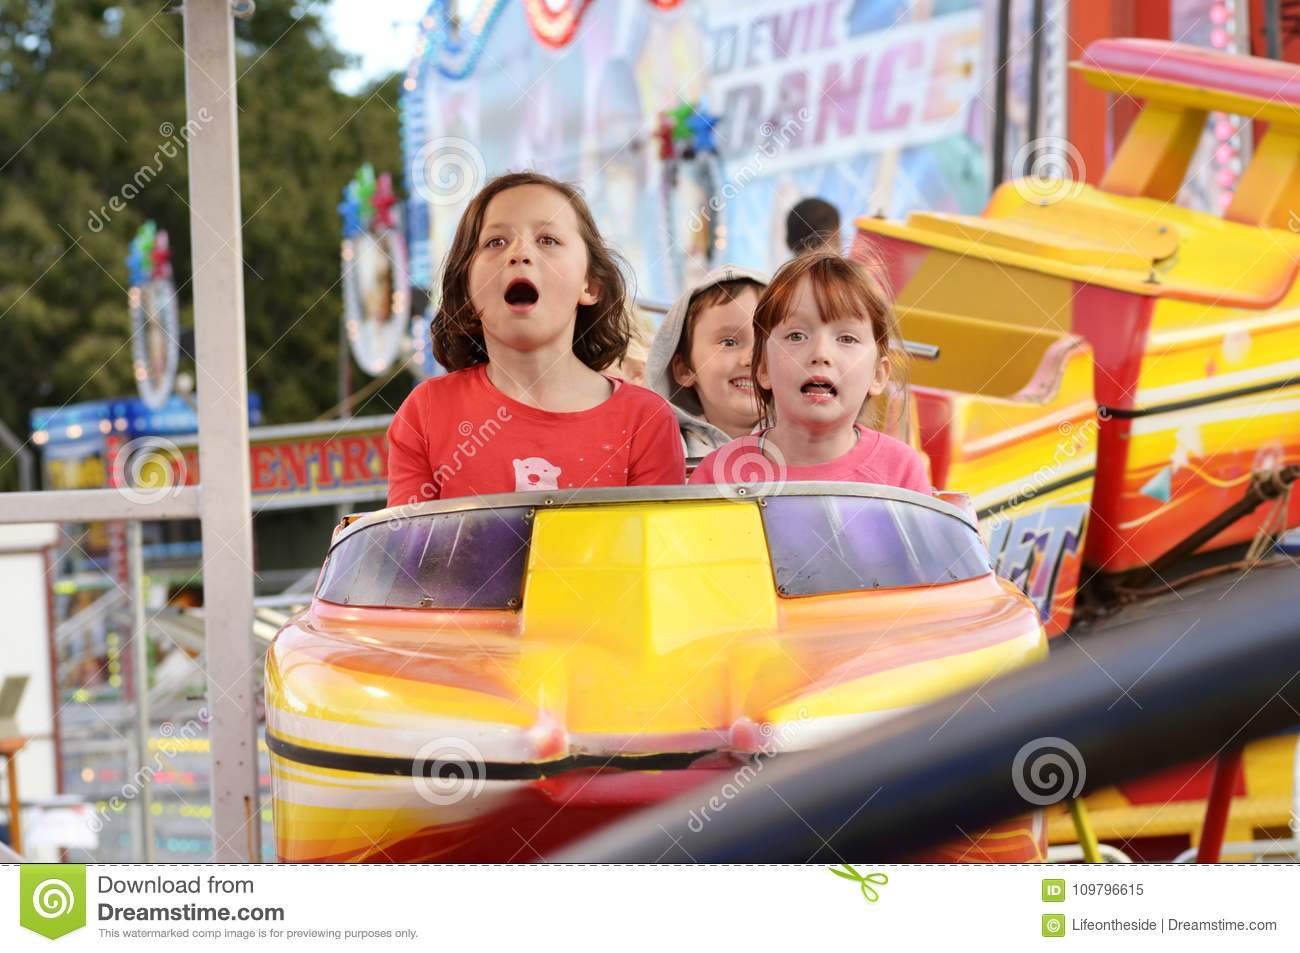 Excited children screaming on carnival roller coaster ride